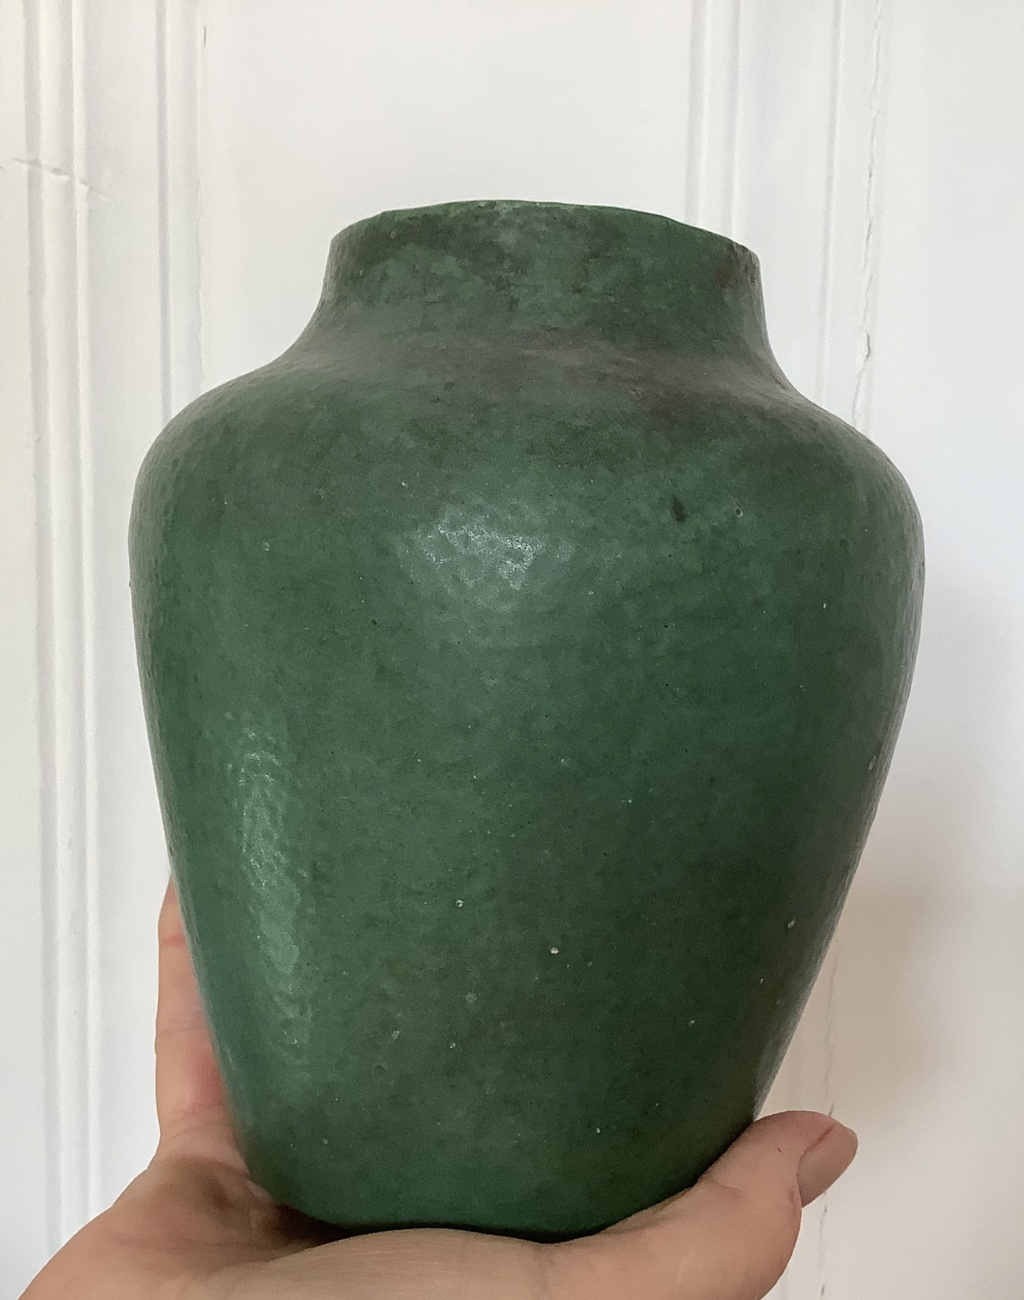 Help ID teal green vase,maybe art pottery? 02dc4910